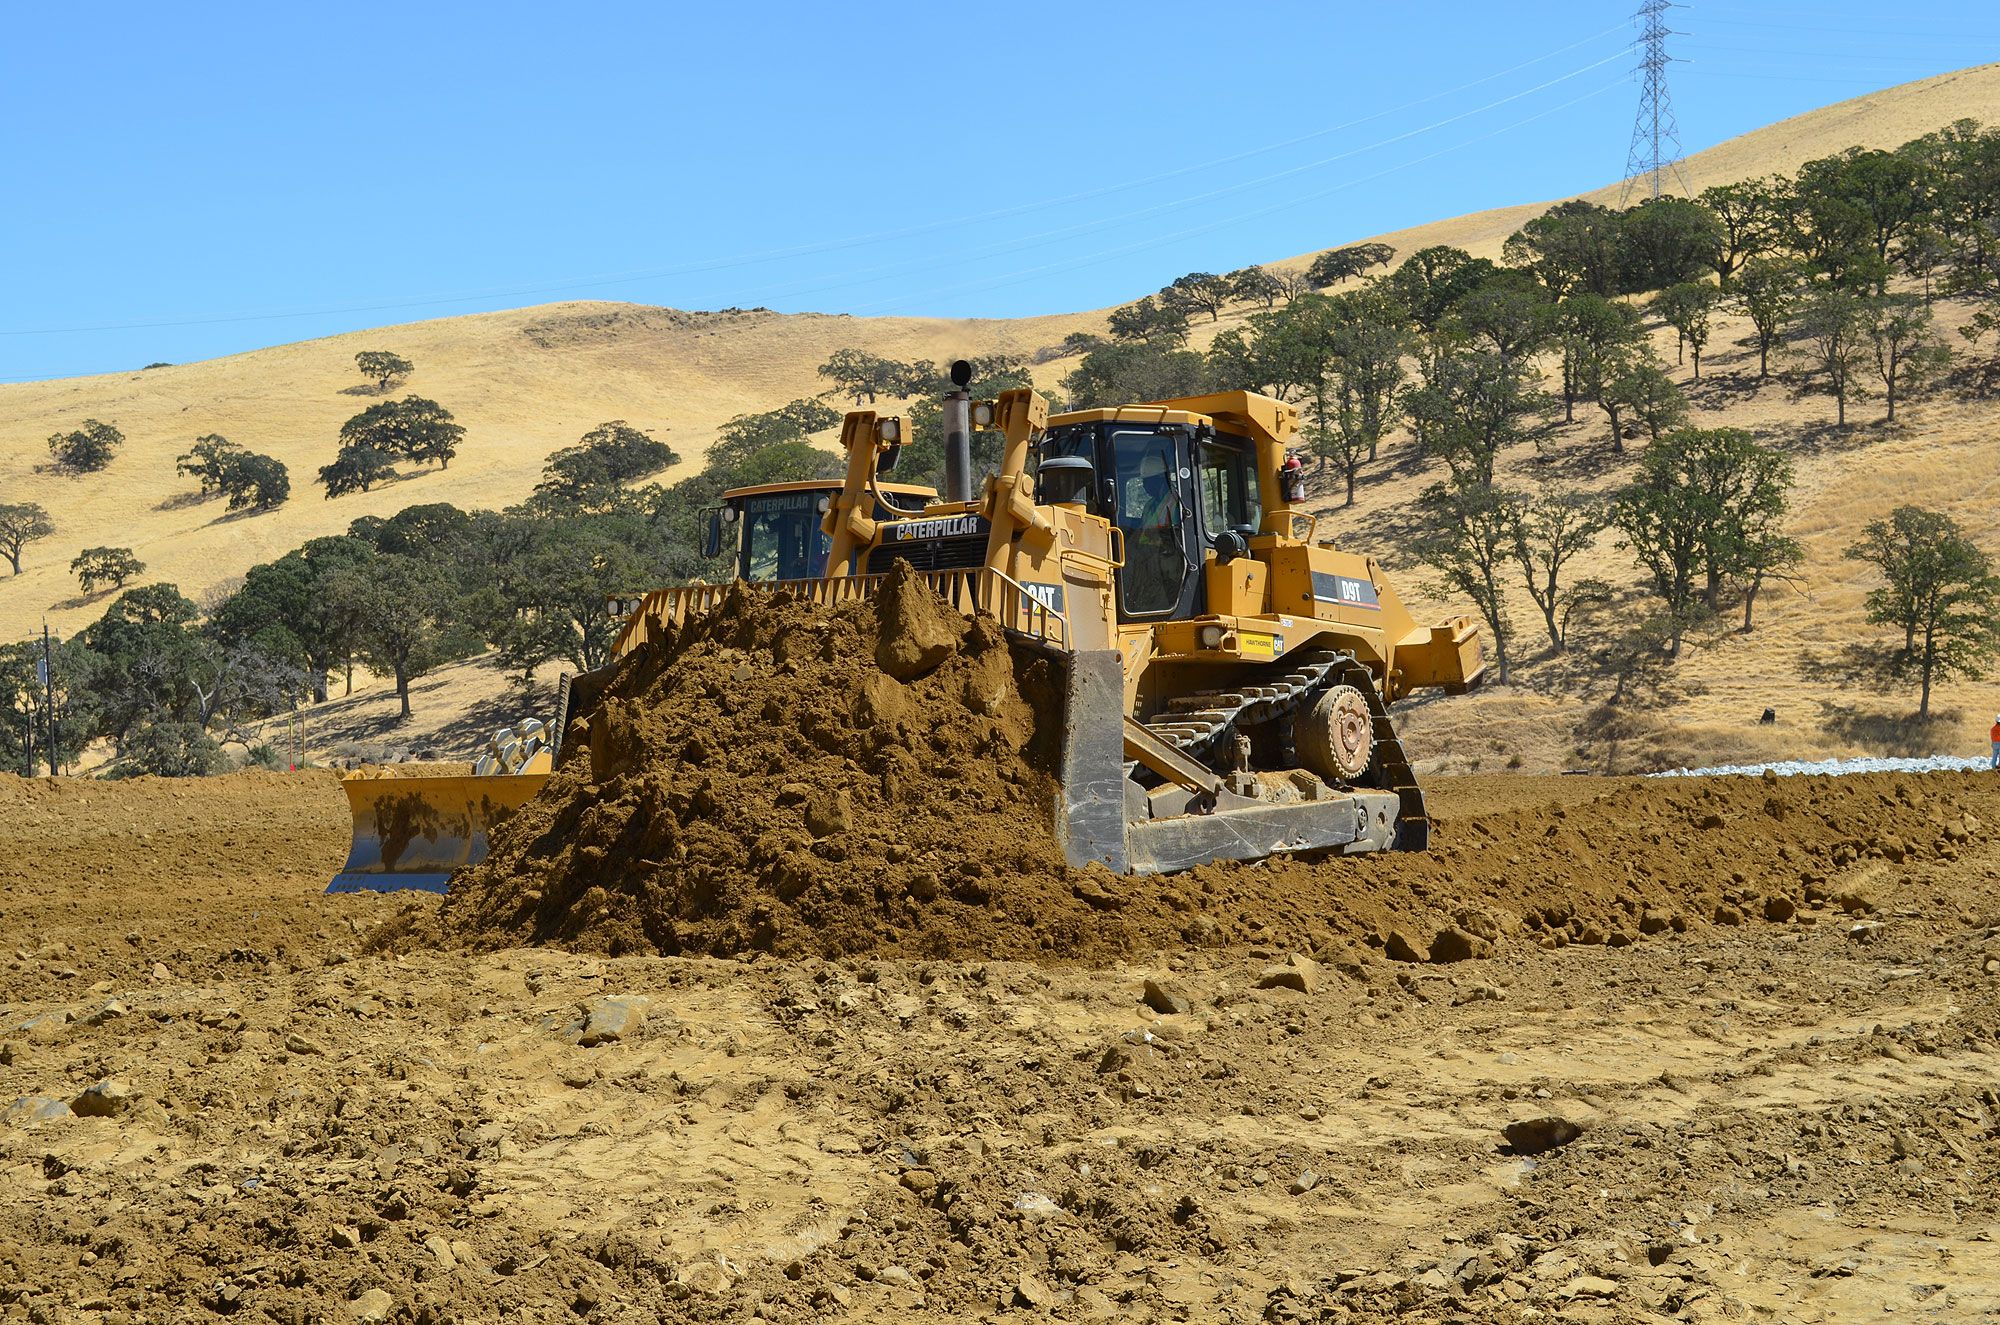 Two massive bulldozers spread new material